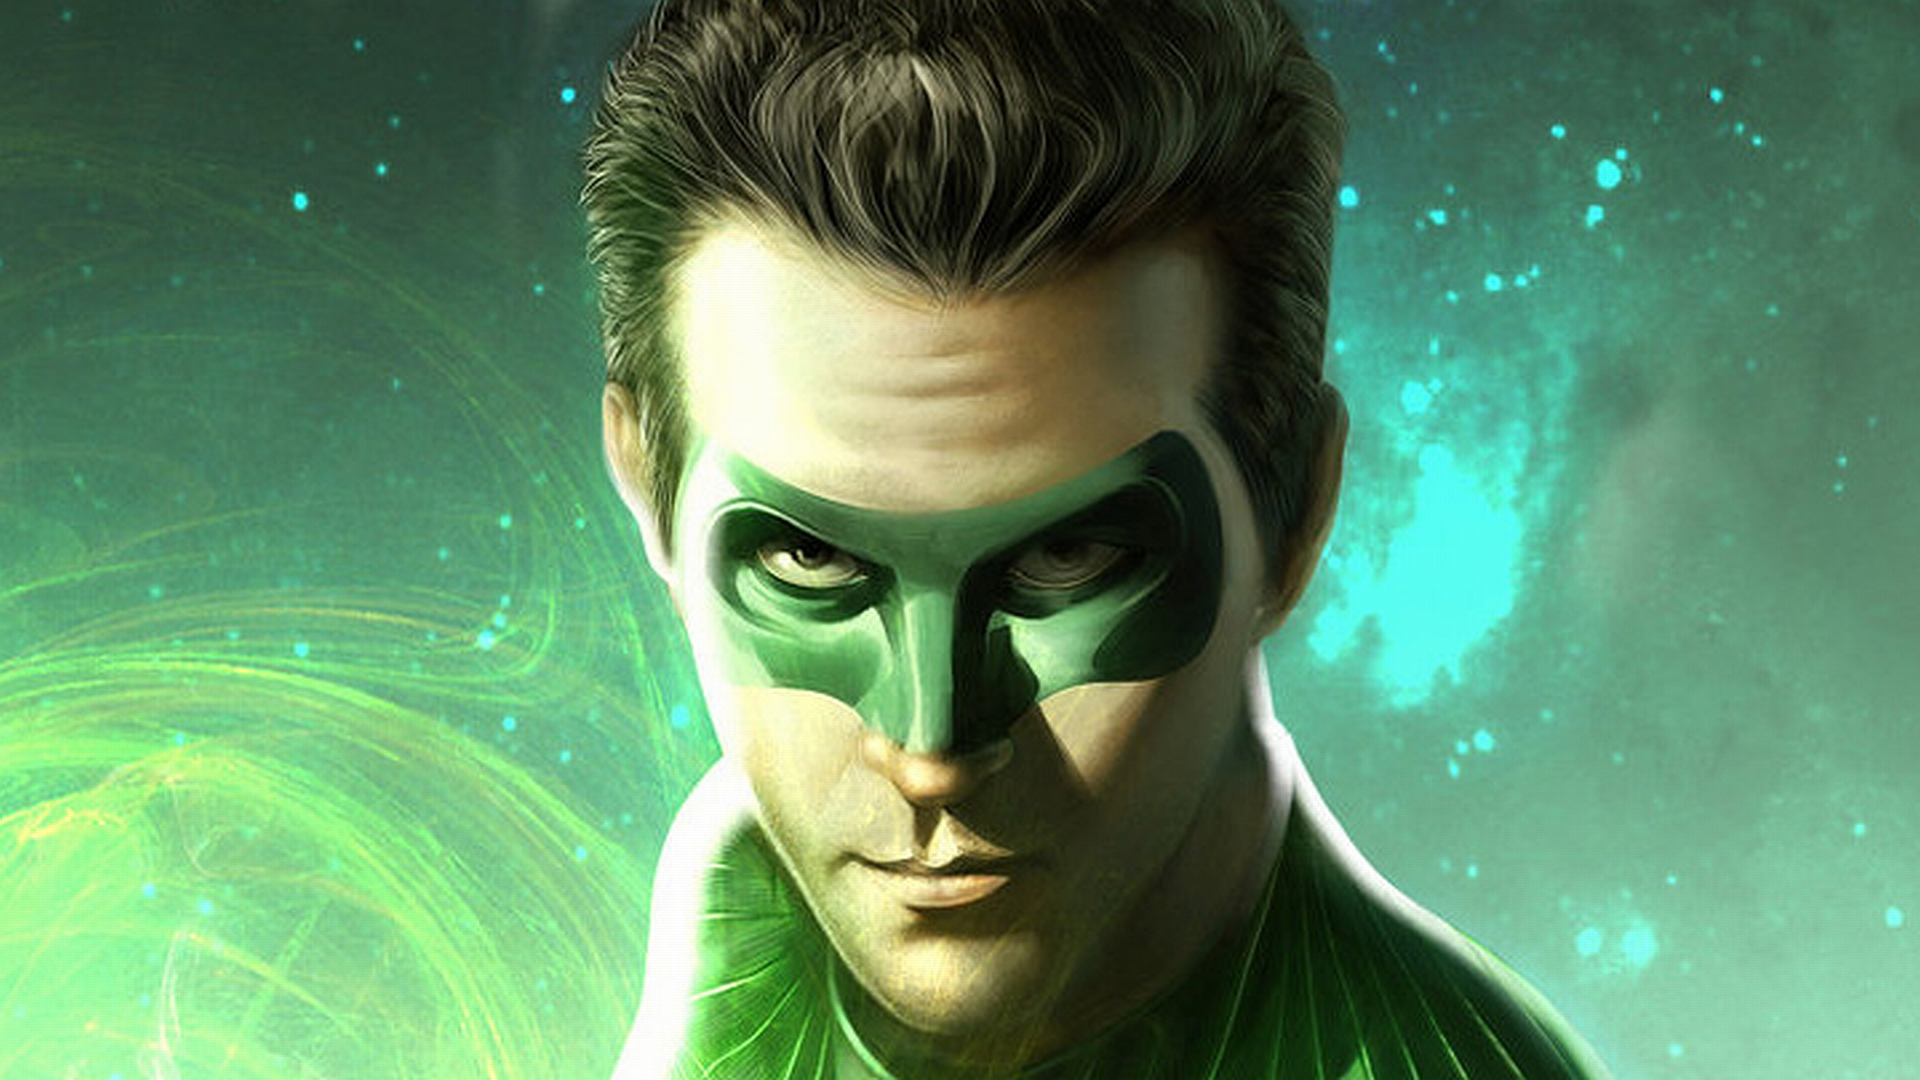 green lantern full hd wallpaper and background image | 1920x1080